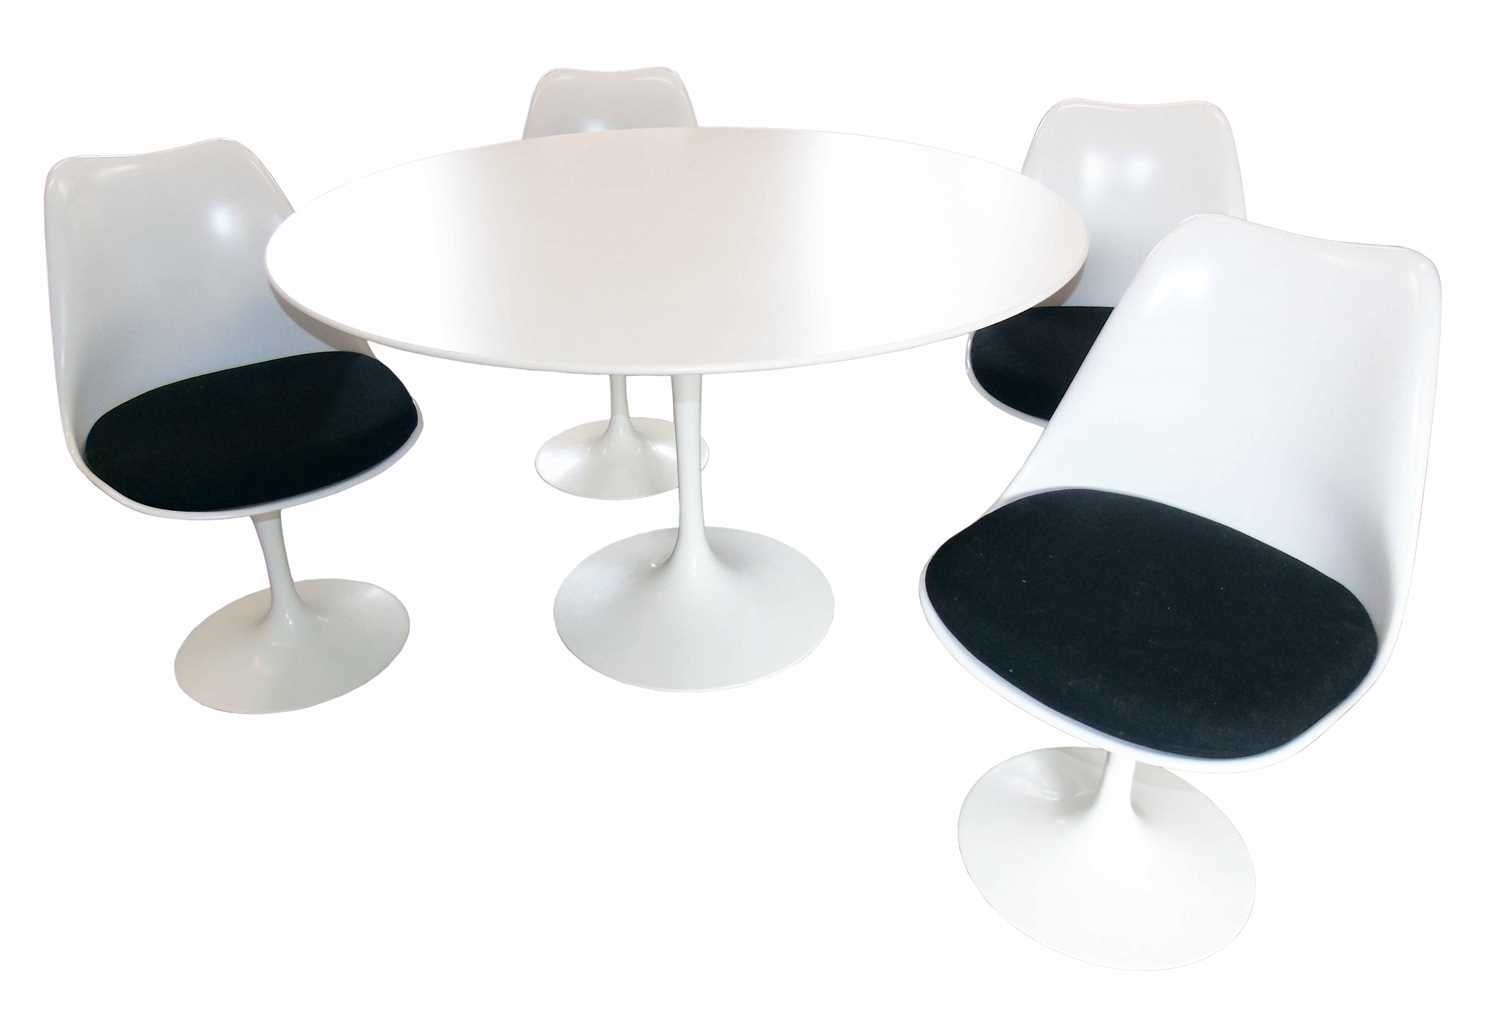 512 - Eero Saarinen for Knoll tulip table & four tulip chairs